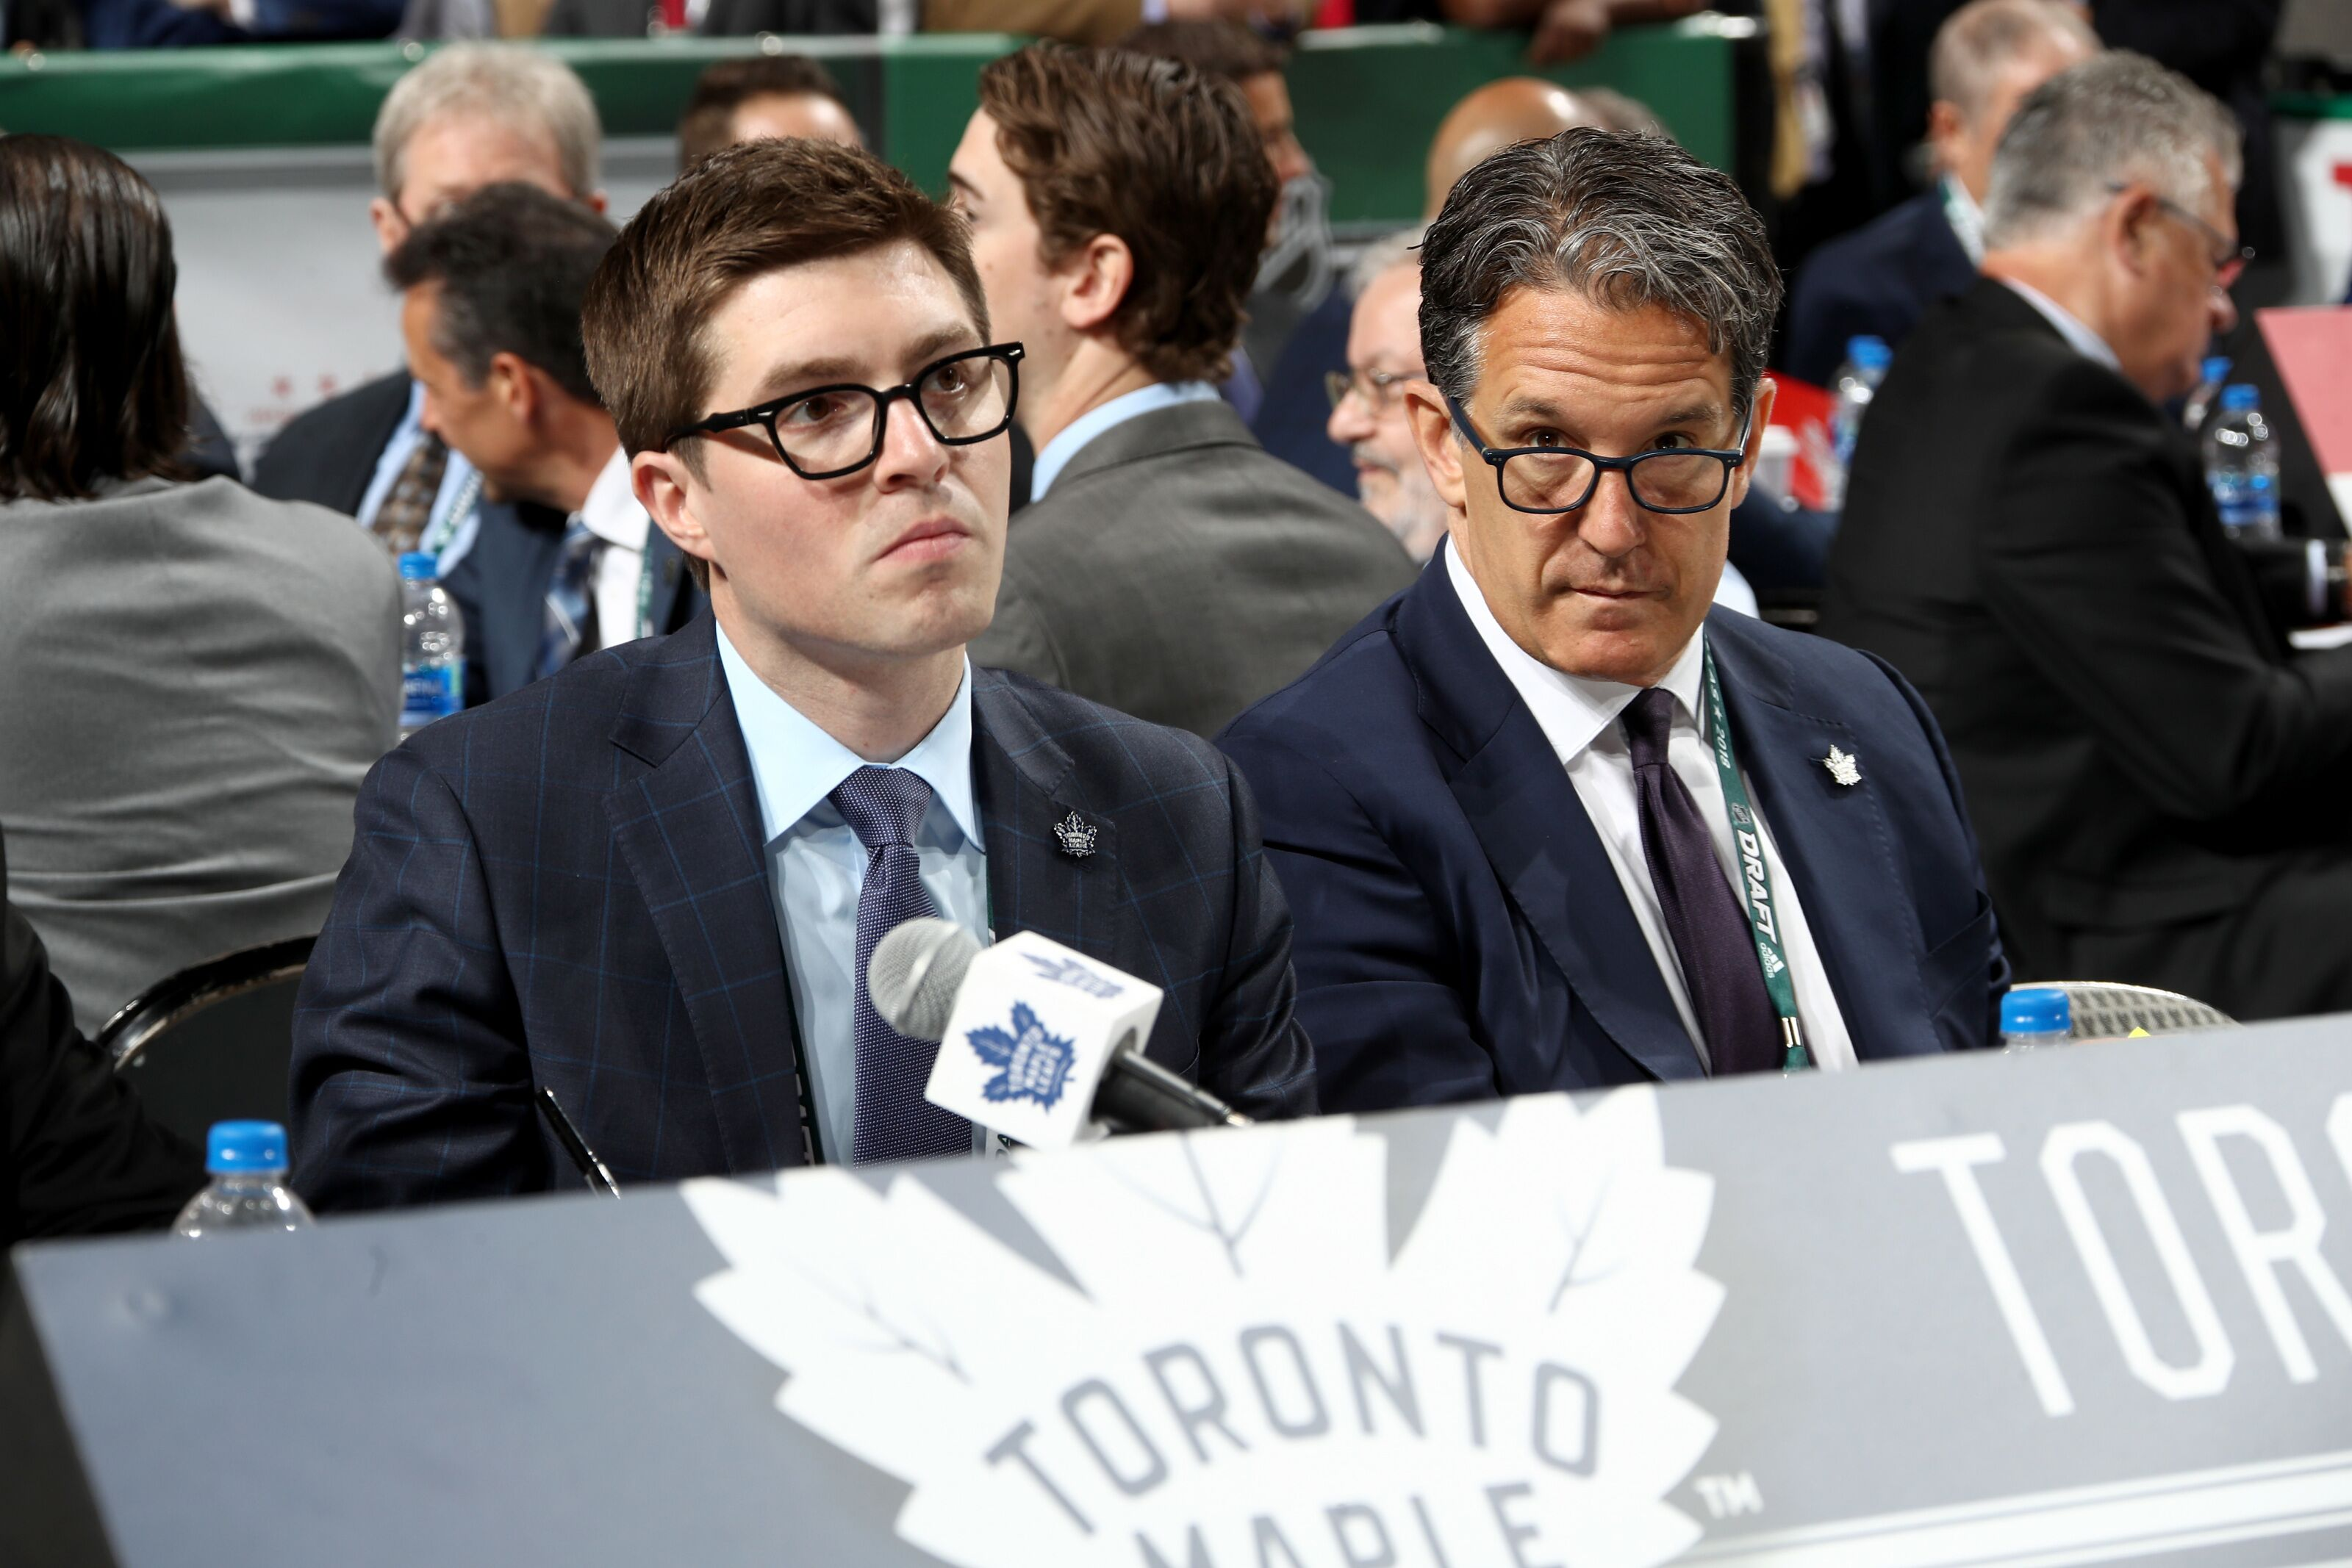 Toronto Maple Leafs: What Do You Think? – The Draft